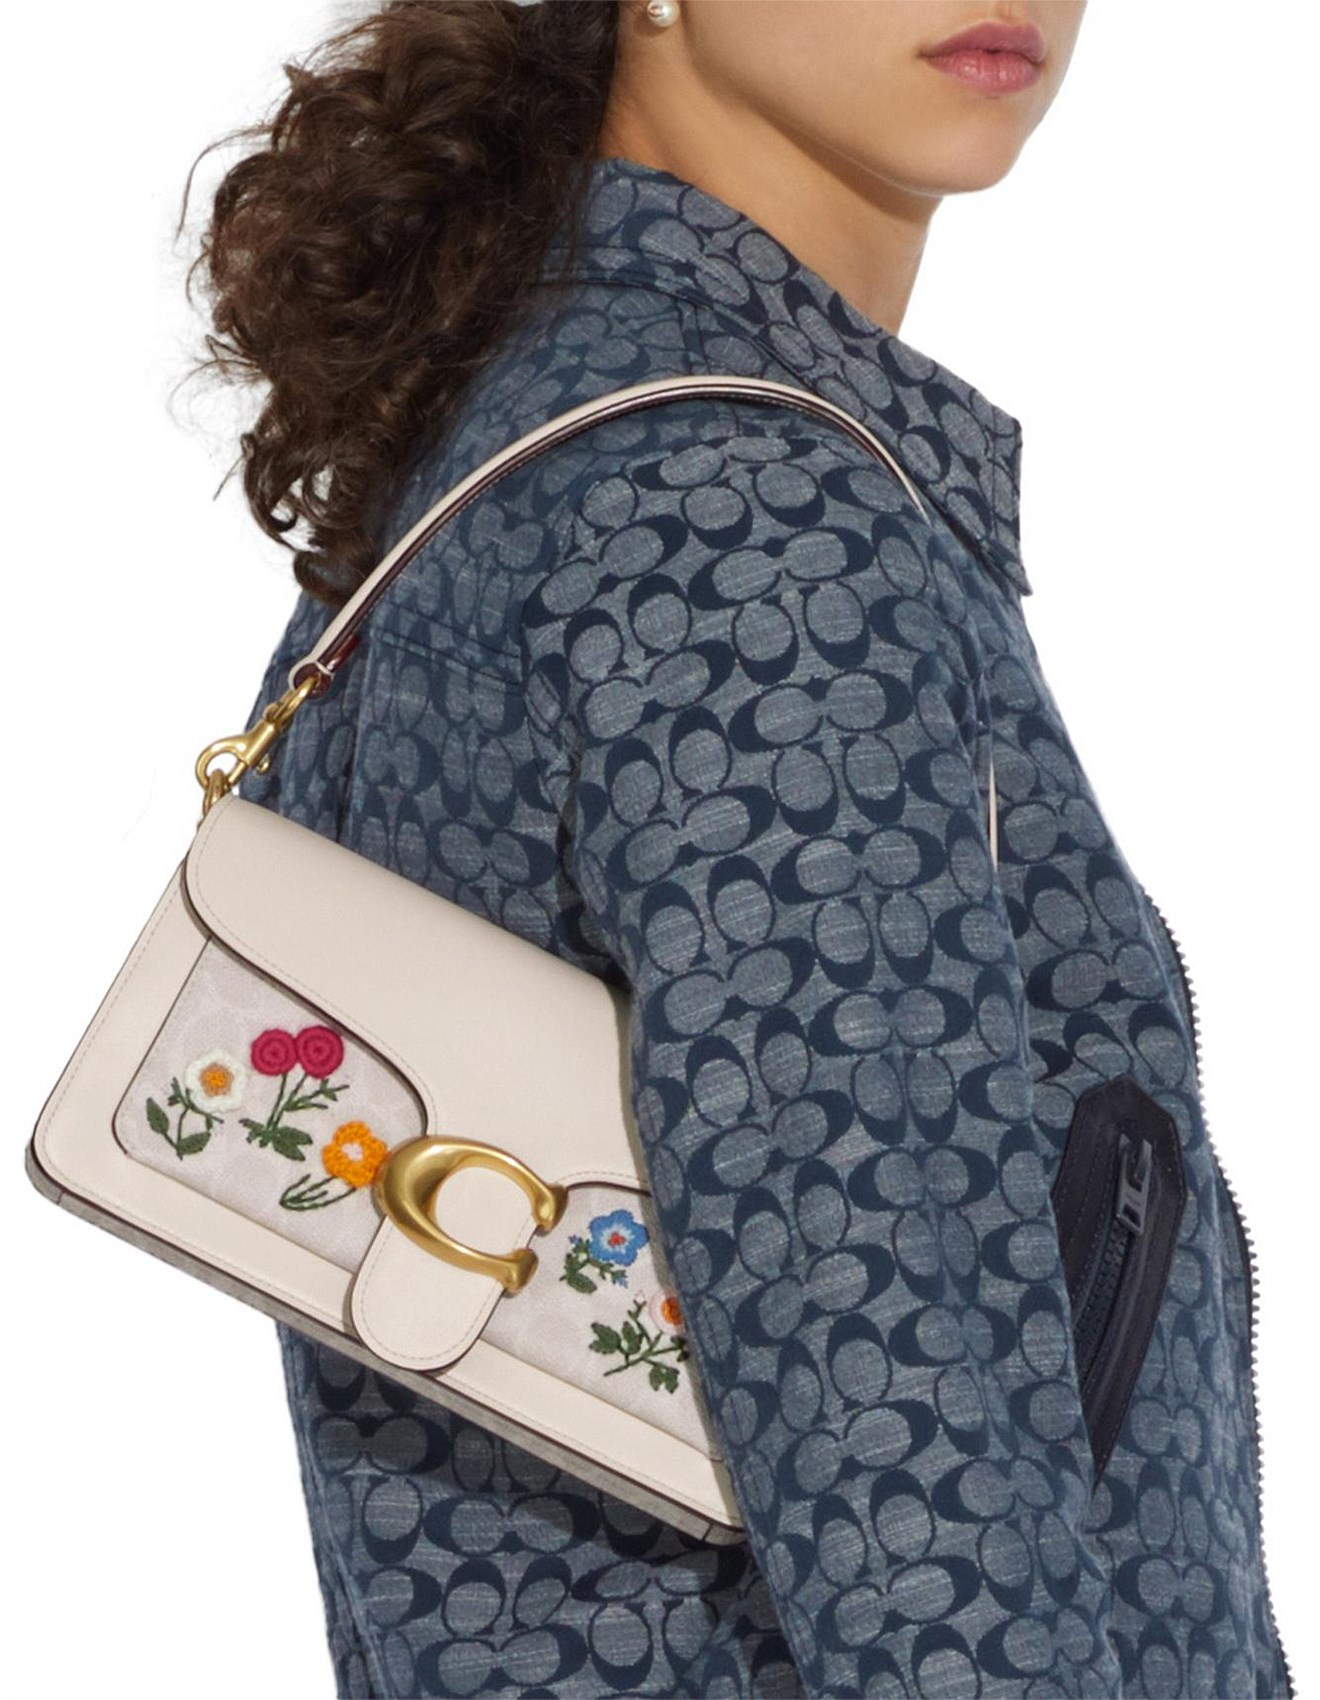 Women's Bags | Handbags, Clutches, Tote Bags Online | David Jones - TABBY 26 IN SIGNATURE CANVAS WITH FLORAL EMBROIDERY